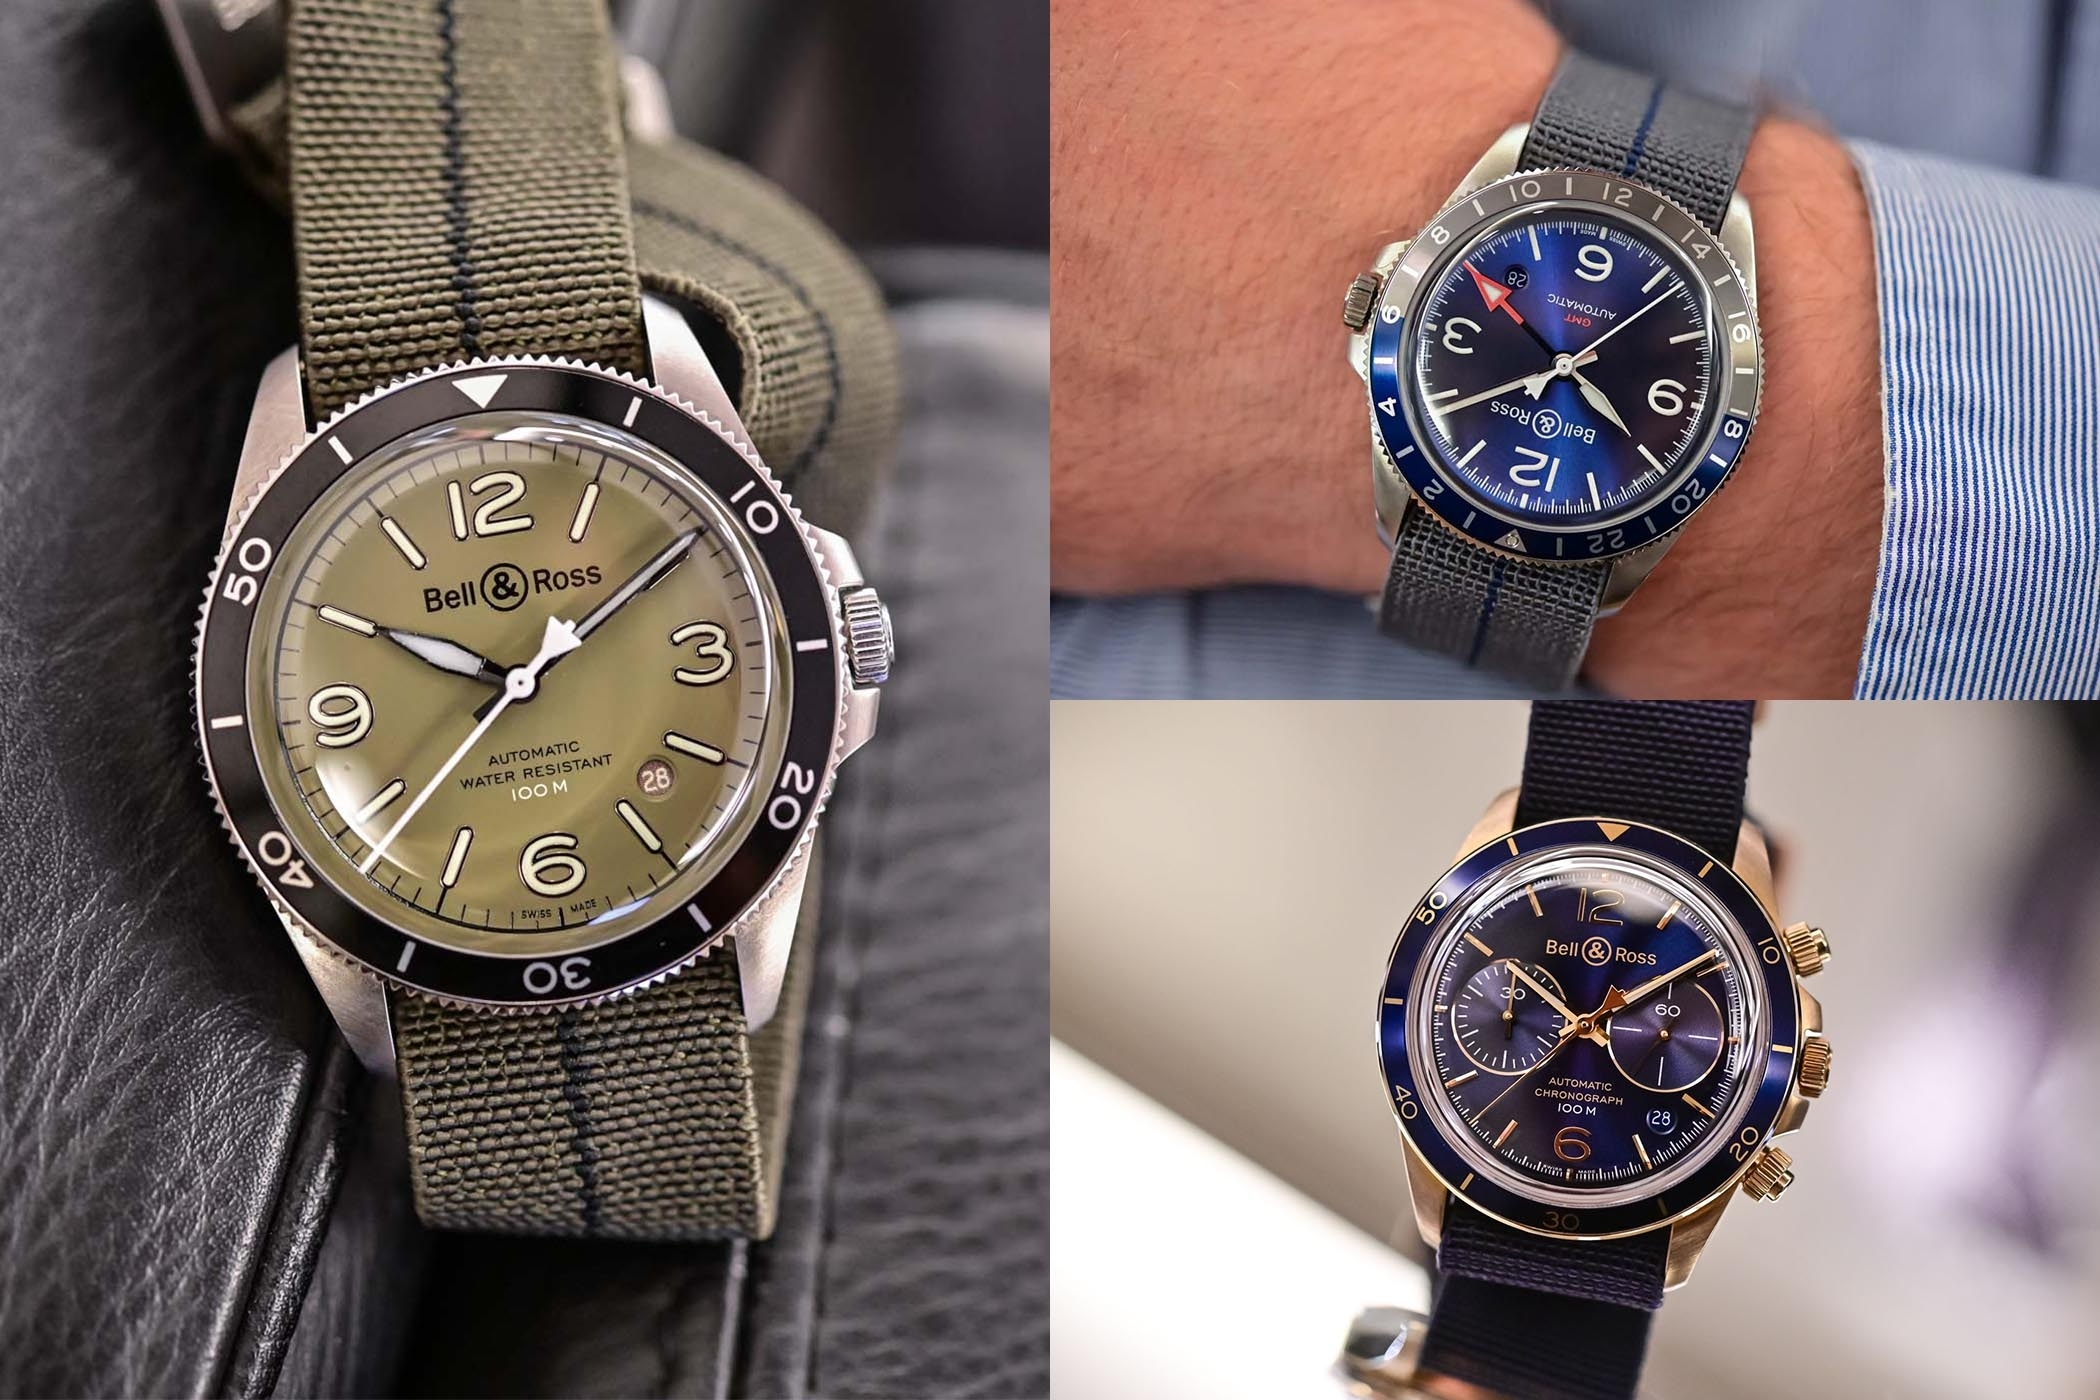 Bell & Ross Vintage Military Green, Gmt Blue And Aeronavale